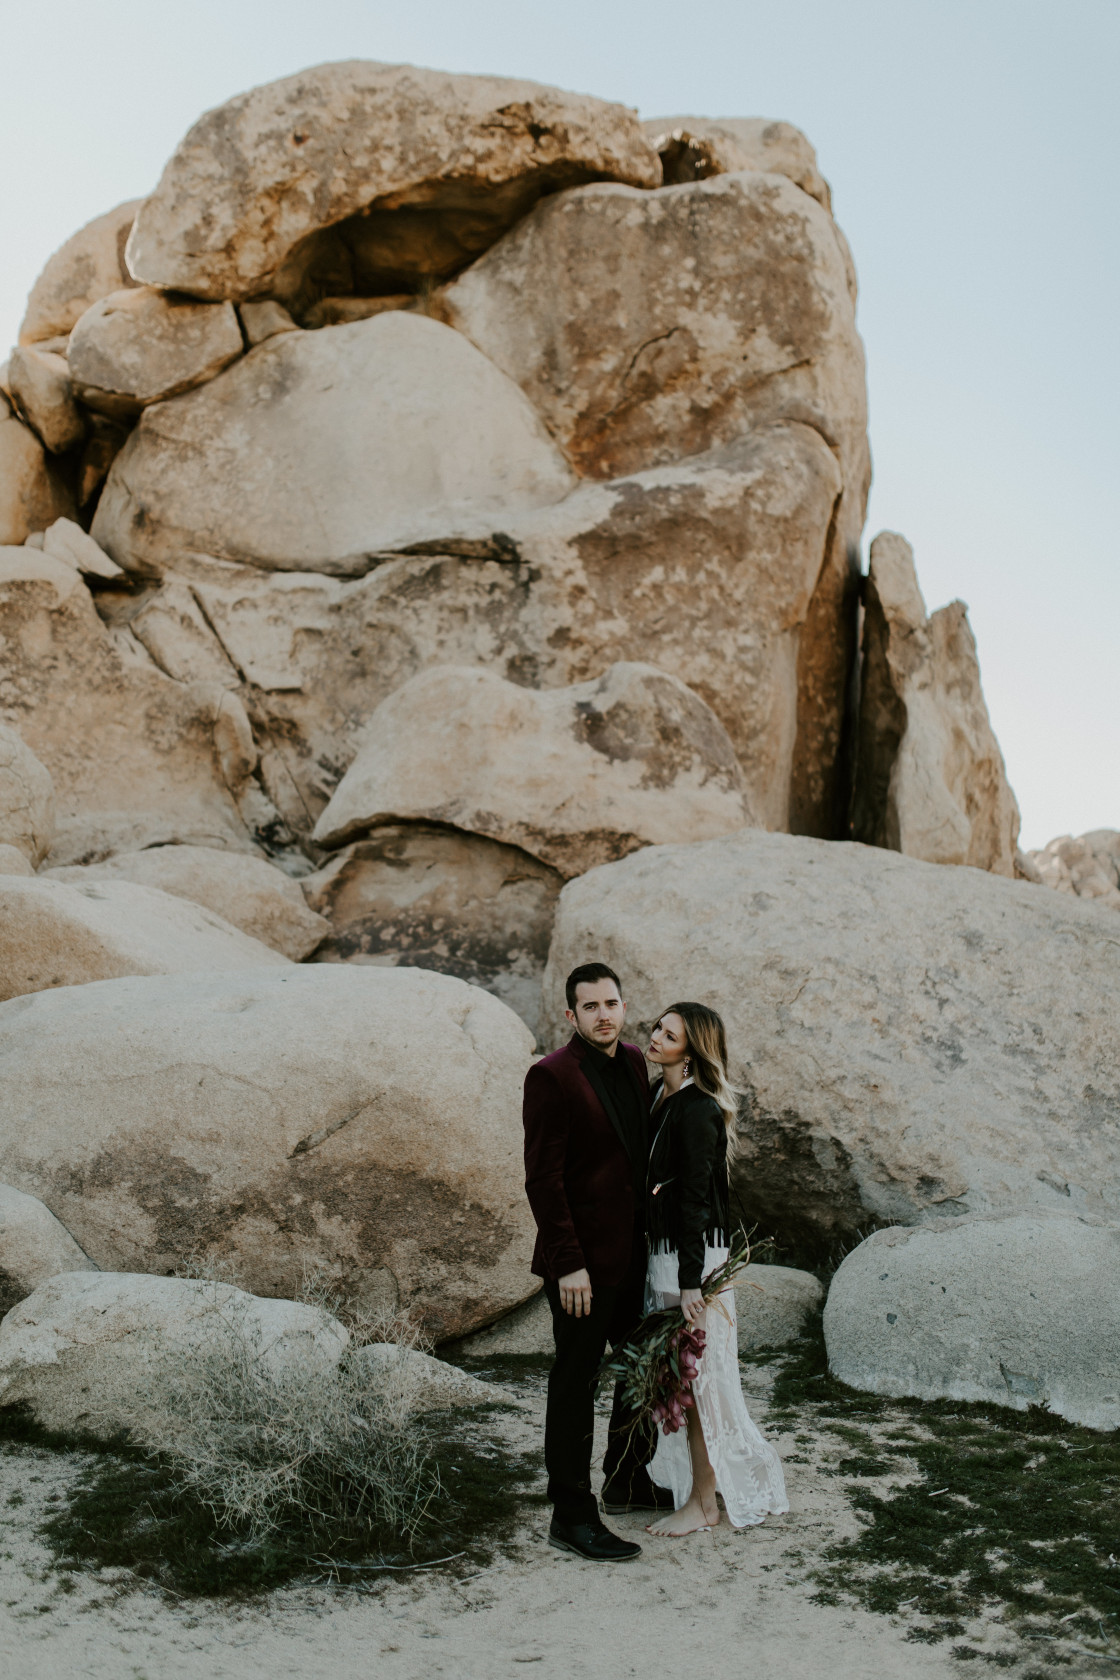 Jeremy and Alyssa stand side by side at Joshua Tree National Park, CA Elopement wedding photography at Joshua Tree National Park by Sienna Plus Josh.